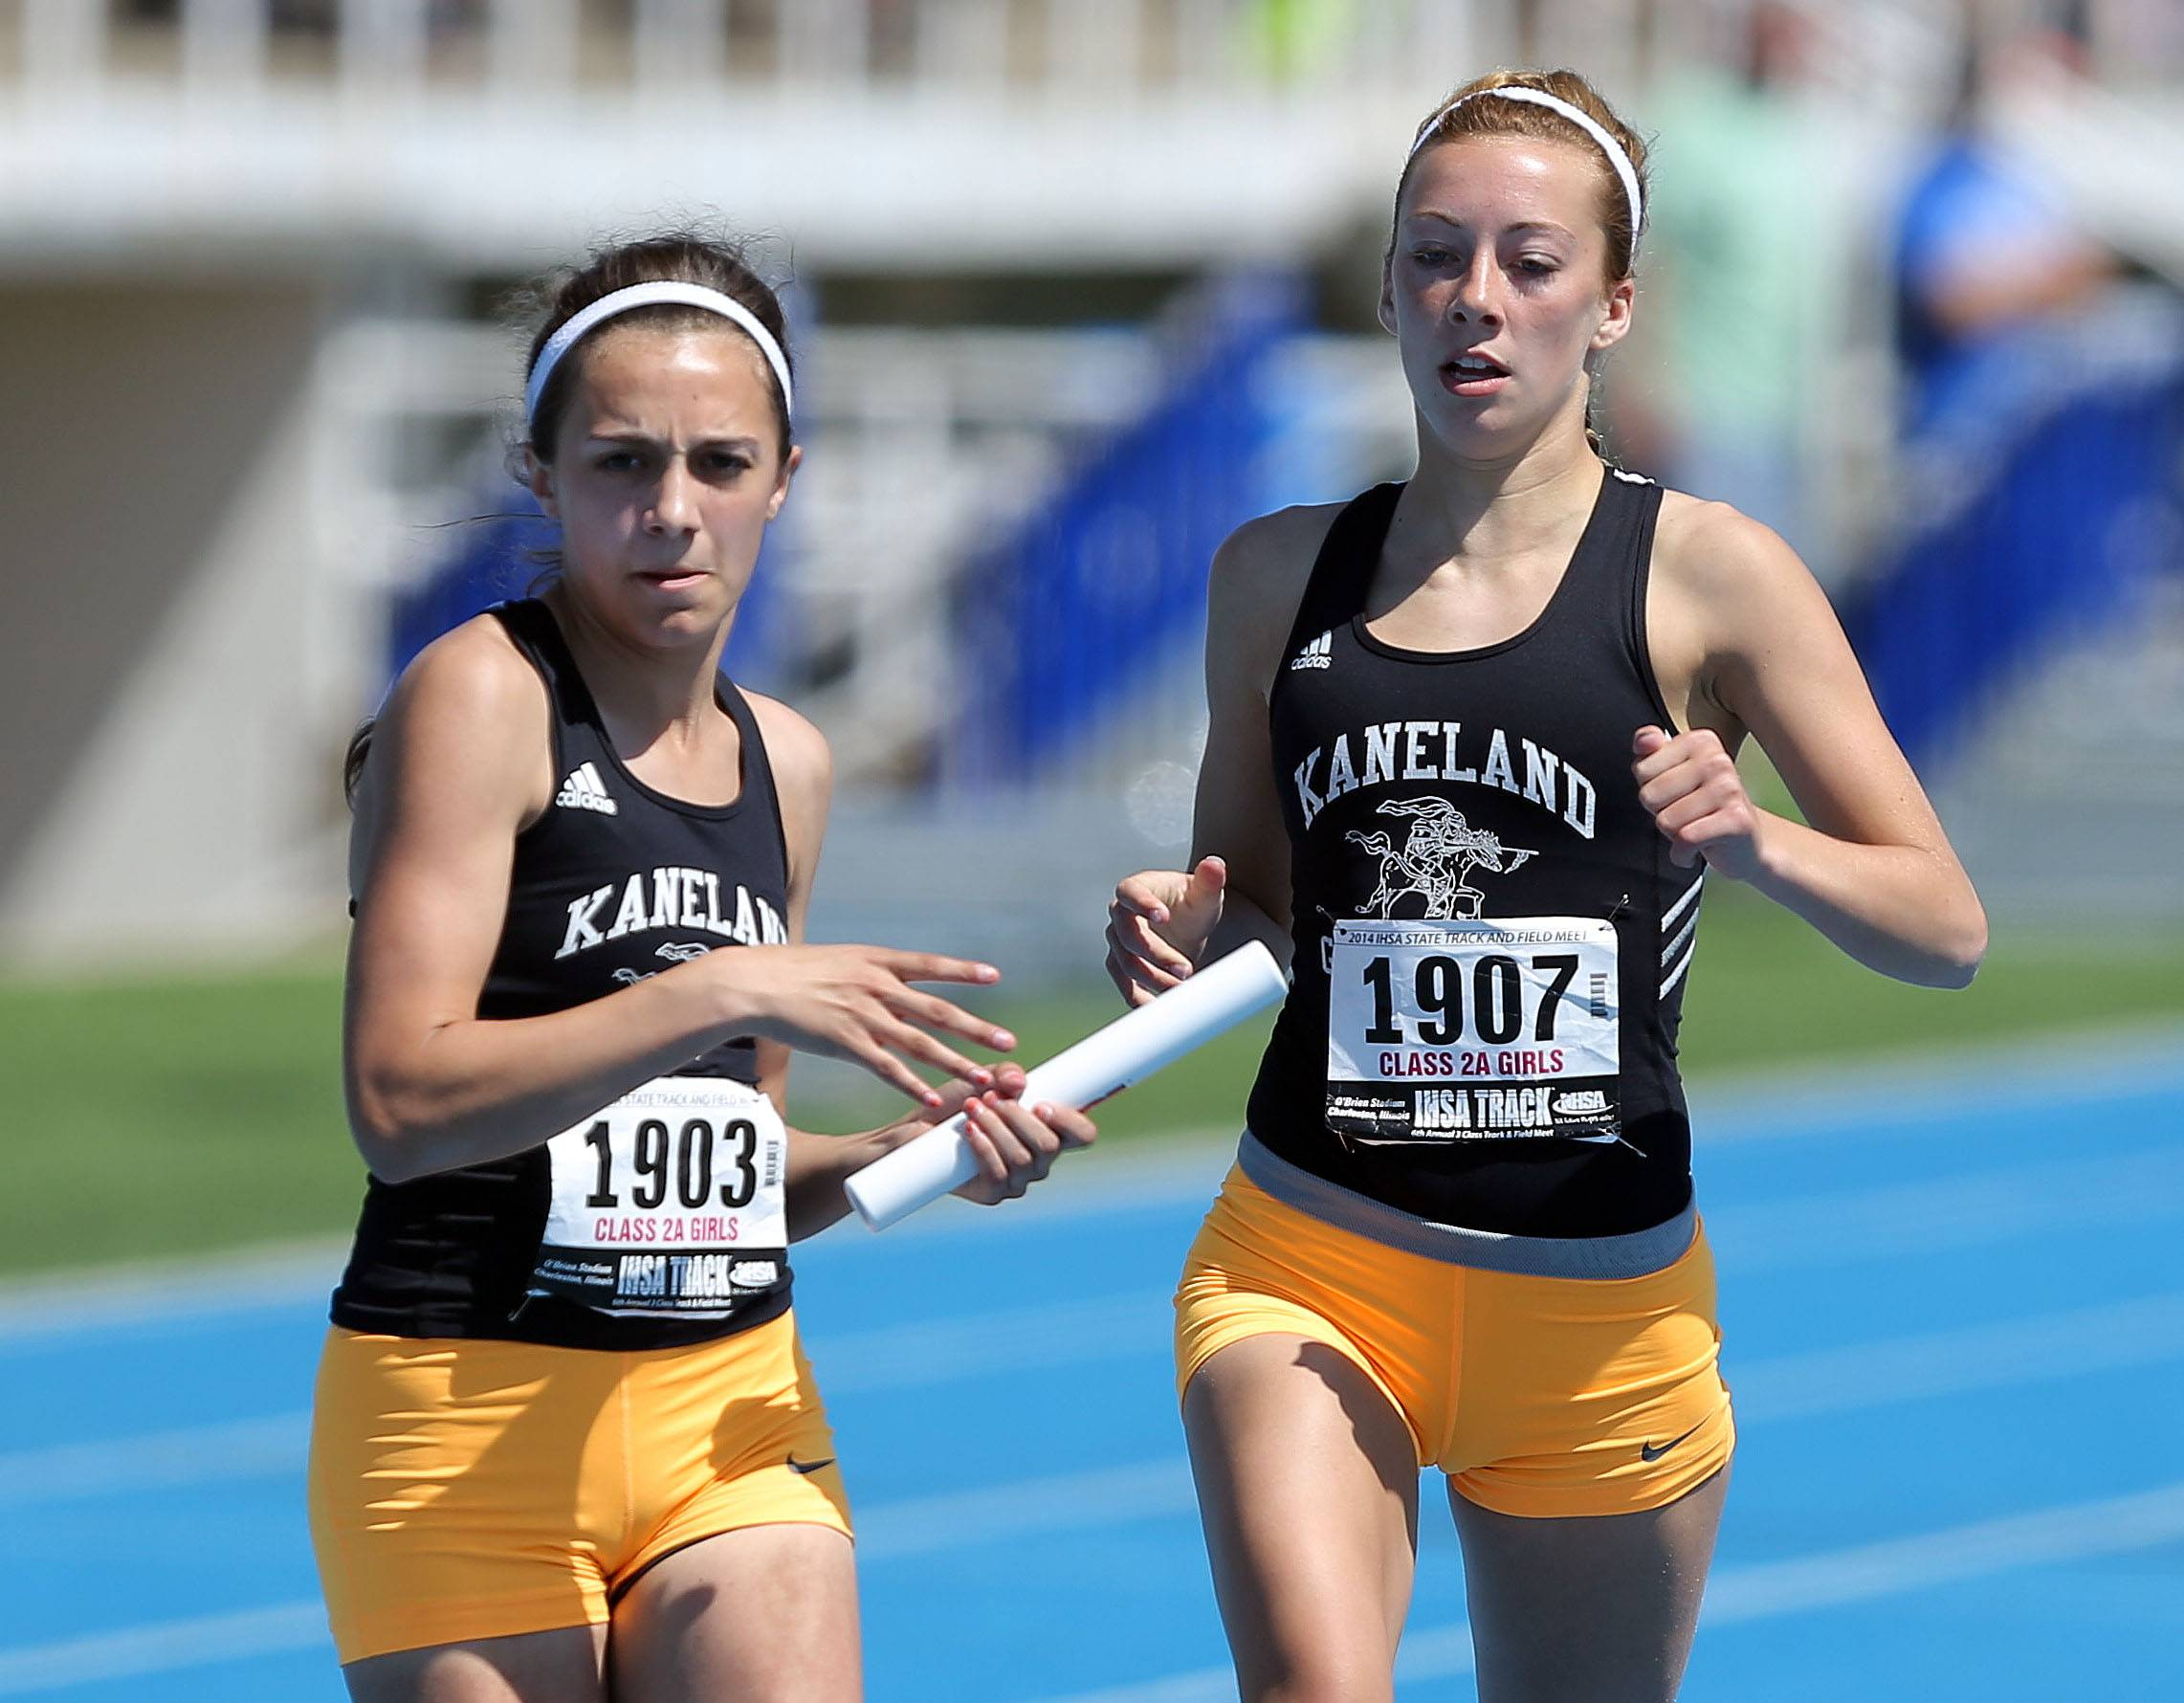 Kaneland's Allie Heinzer, left, takes the baton from Becca Richtman in the 4x200-meter relay in Class 2A.